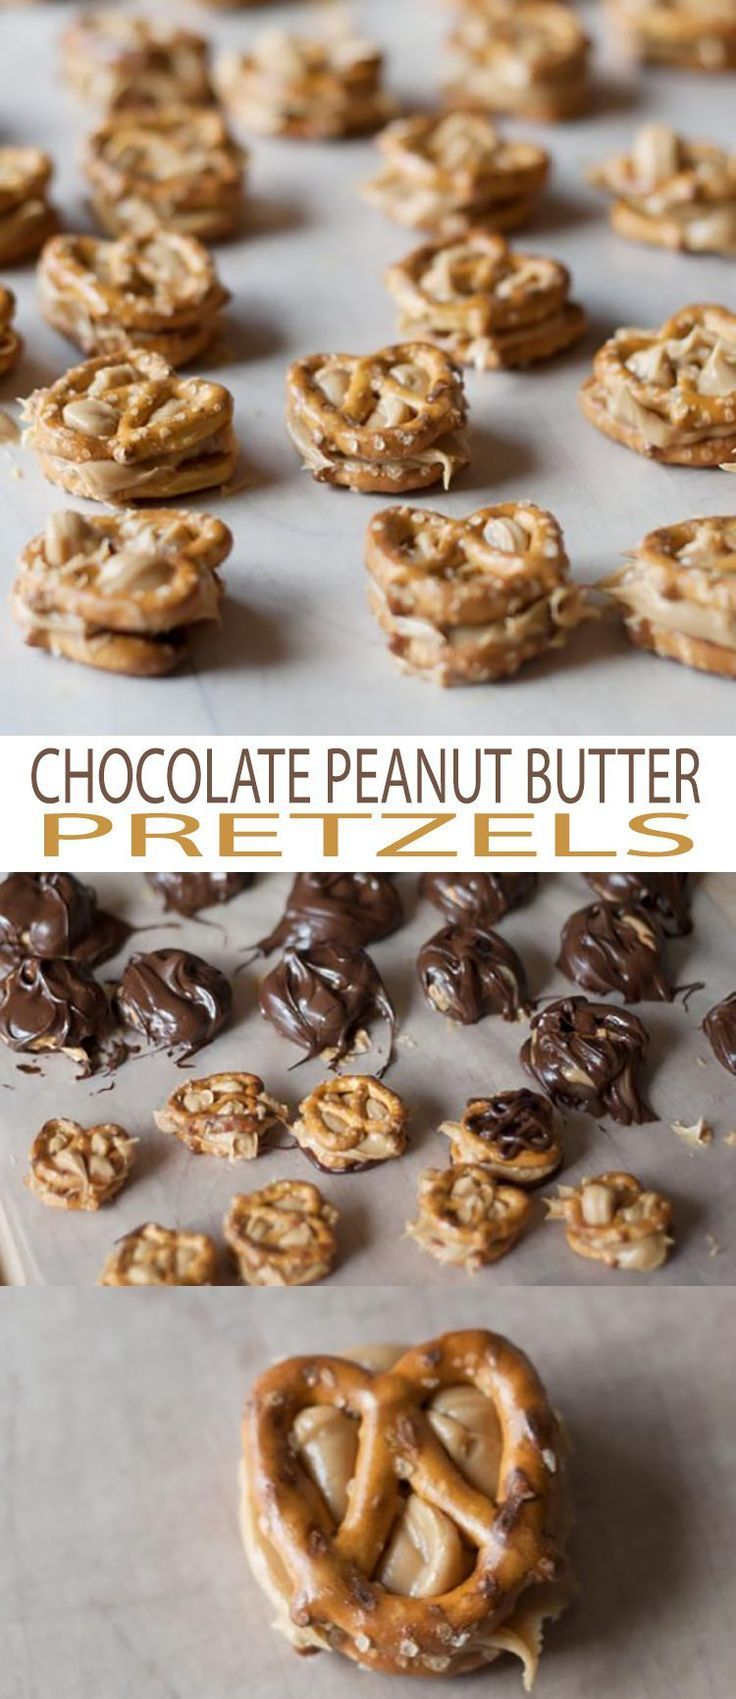 Best 25+ Chocolate covered peanuts ideas on Pinterest | Crockpot ...